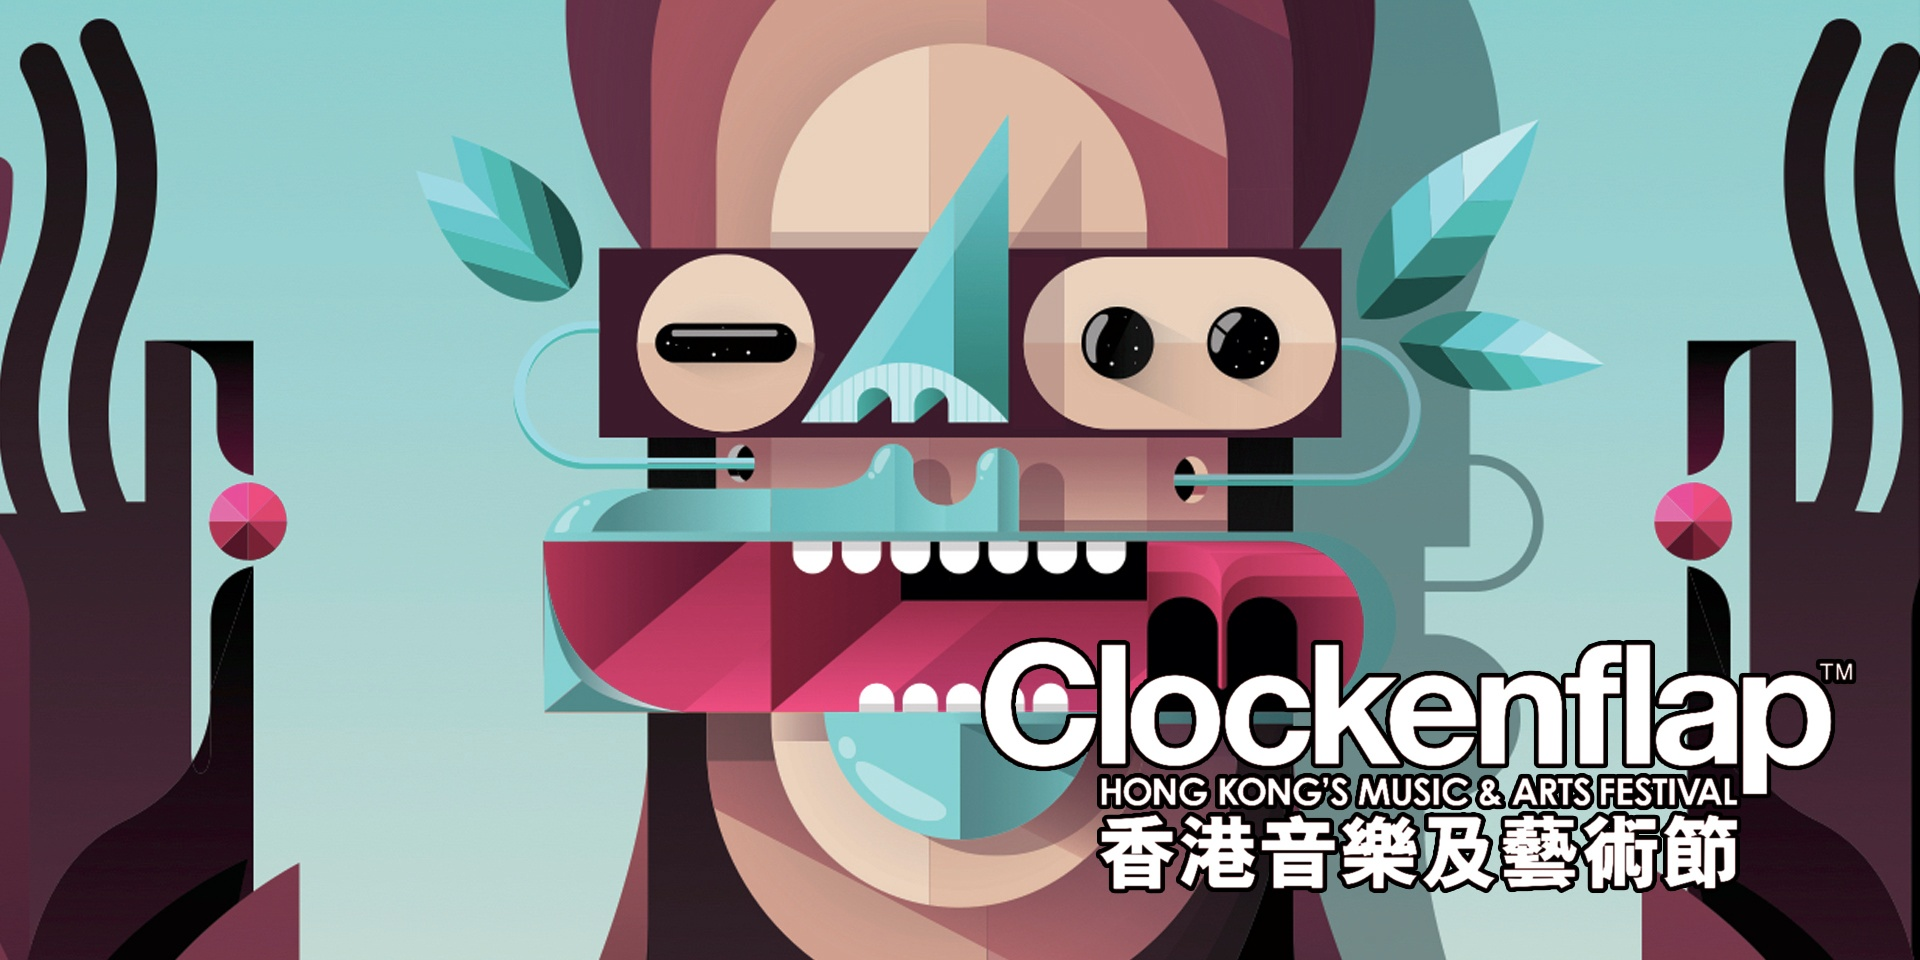 Here's the full schedule for Clockenflap 2015